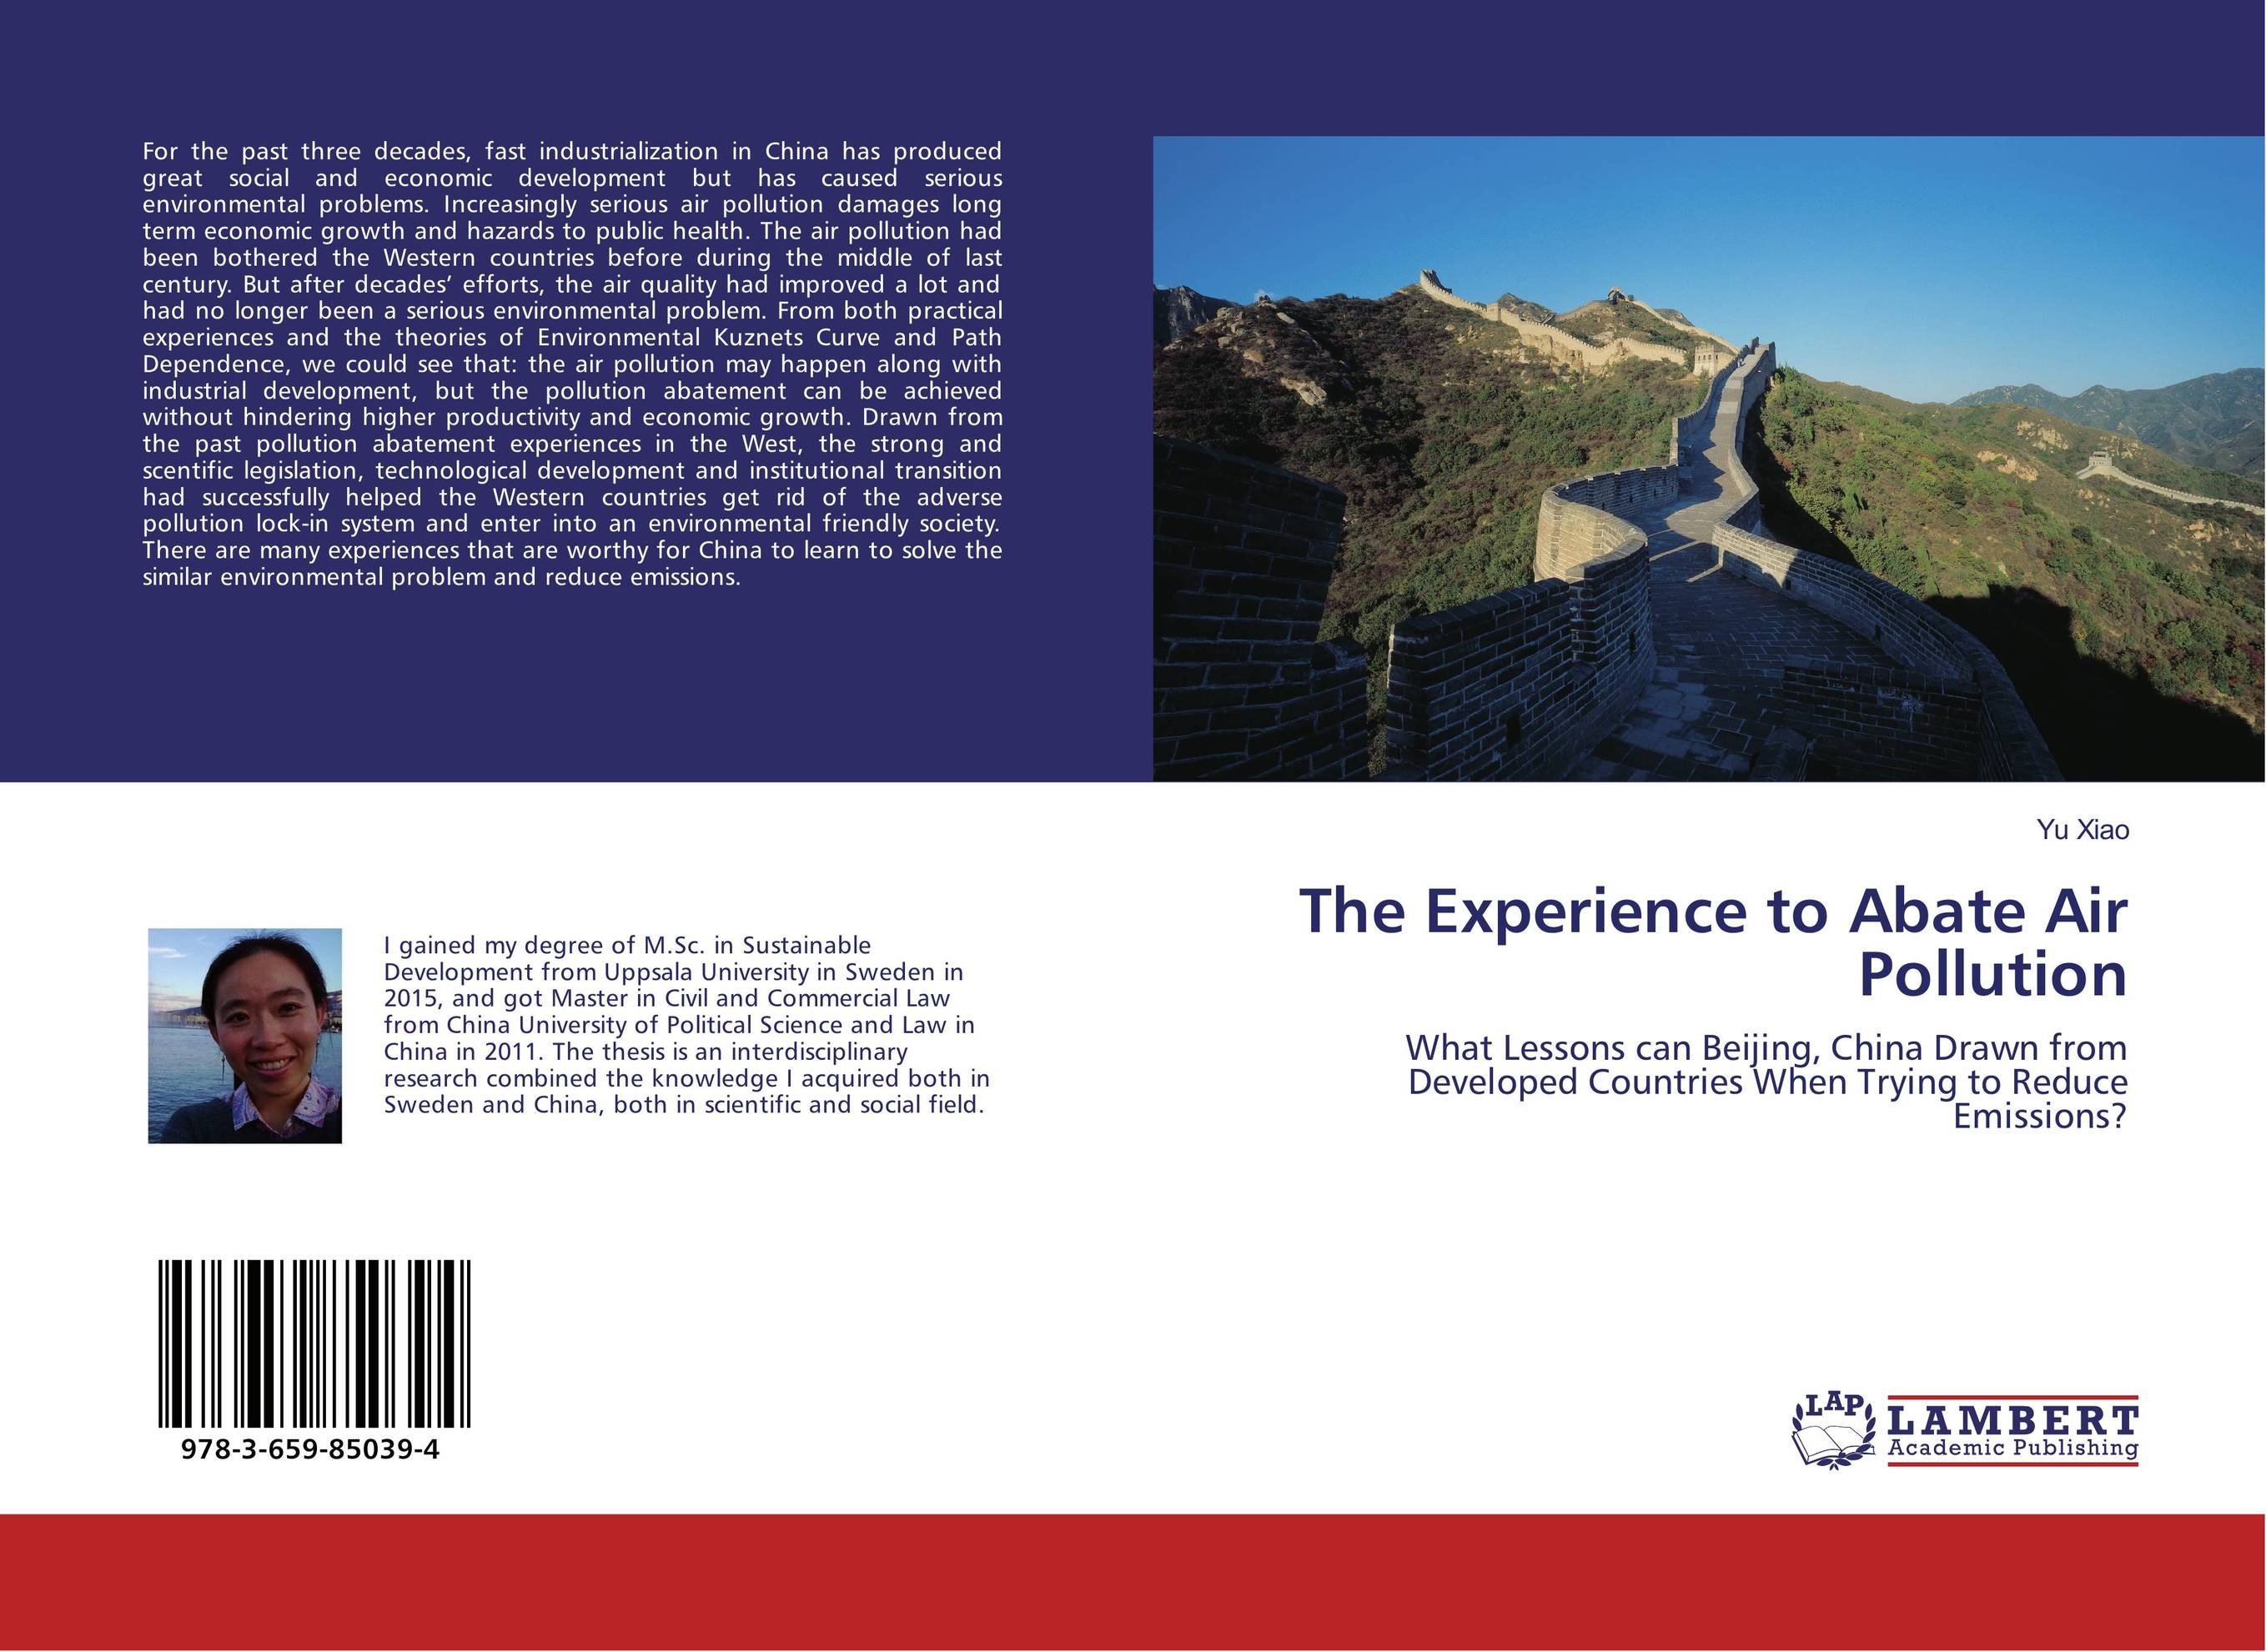 The Experience to Abate Air Pollution an introduction to environmental pollution